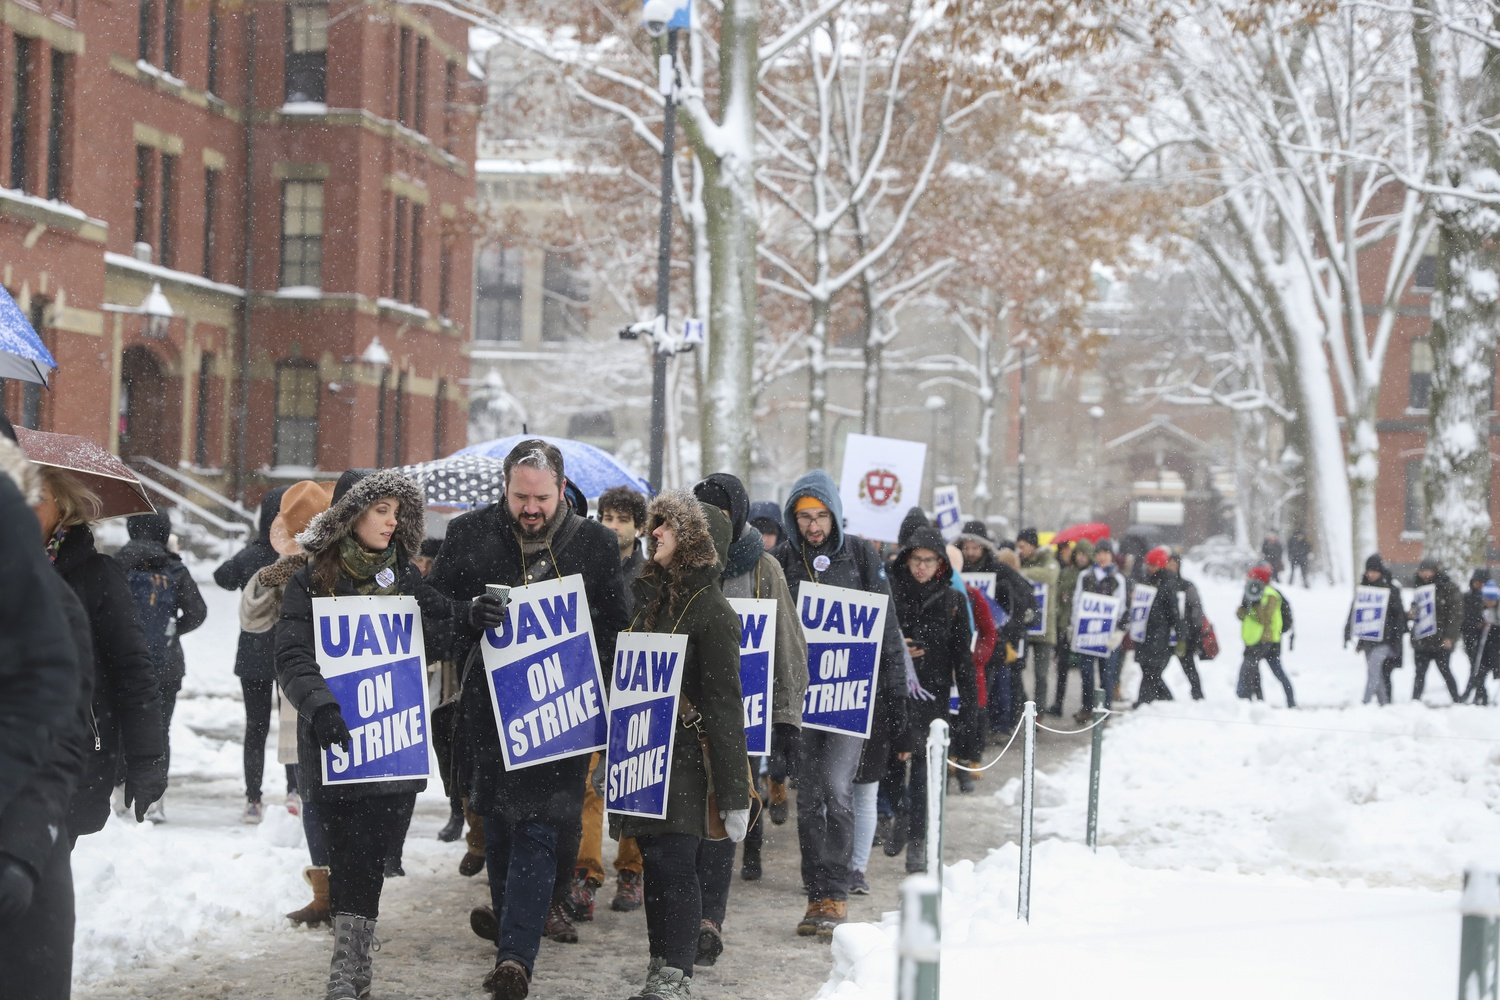 Graduate students brave the snowfall and freezing temperatures as they march through the Yard on Tuesday morning. The first day of the strike began with a walkout at 10:30 a.m., and the protestors numbered in the hundreds at their peak.